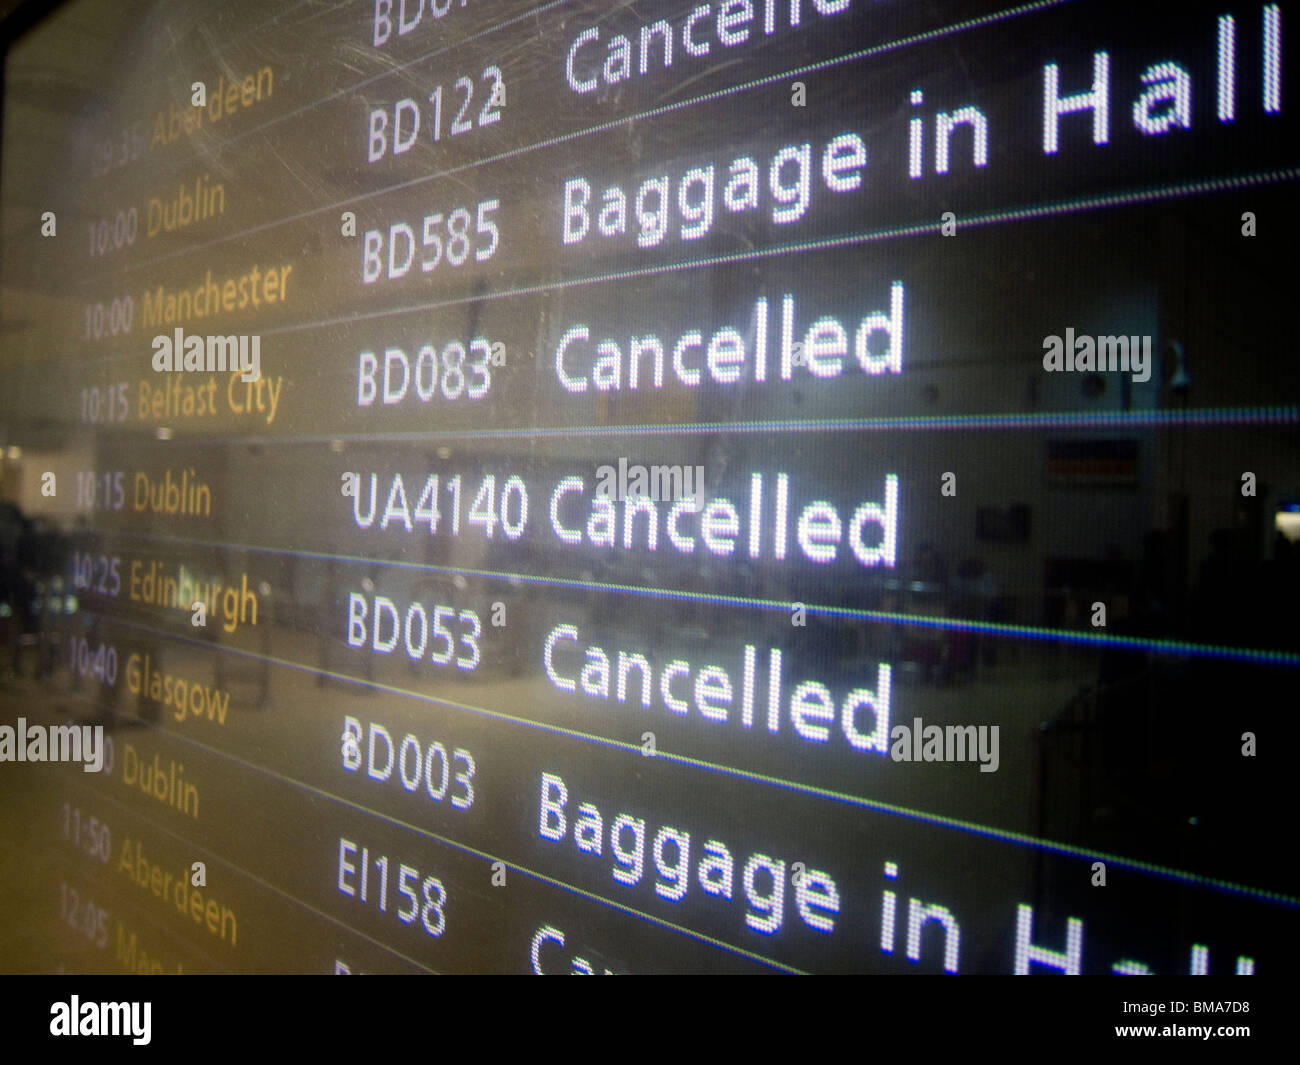 Flight Cancellations at Heathrow caused by Icelandic Volcanic Ash. - Stock Image